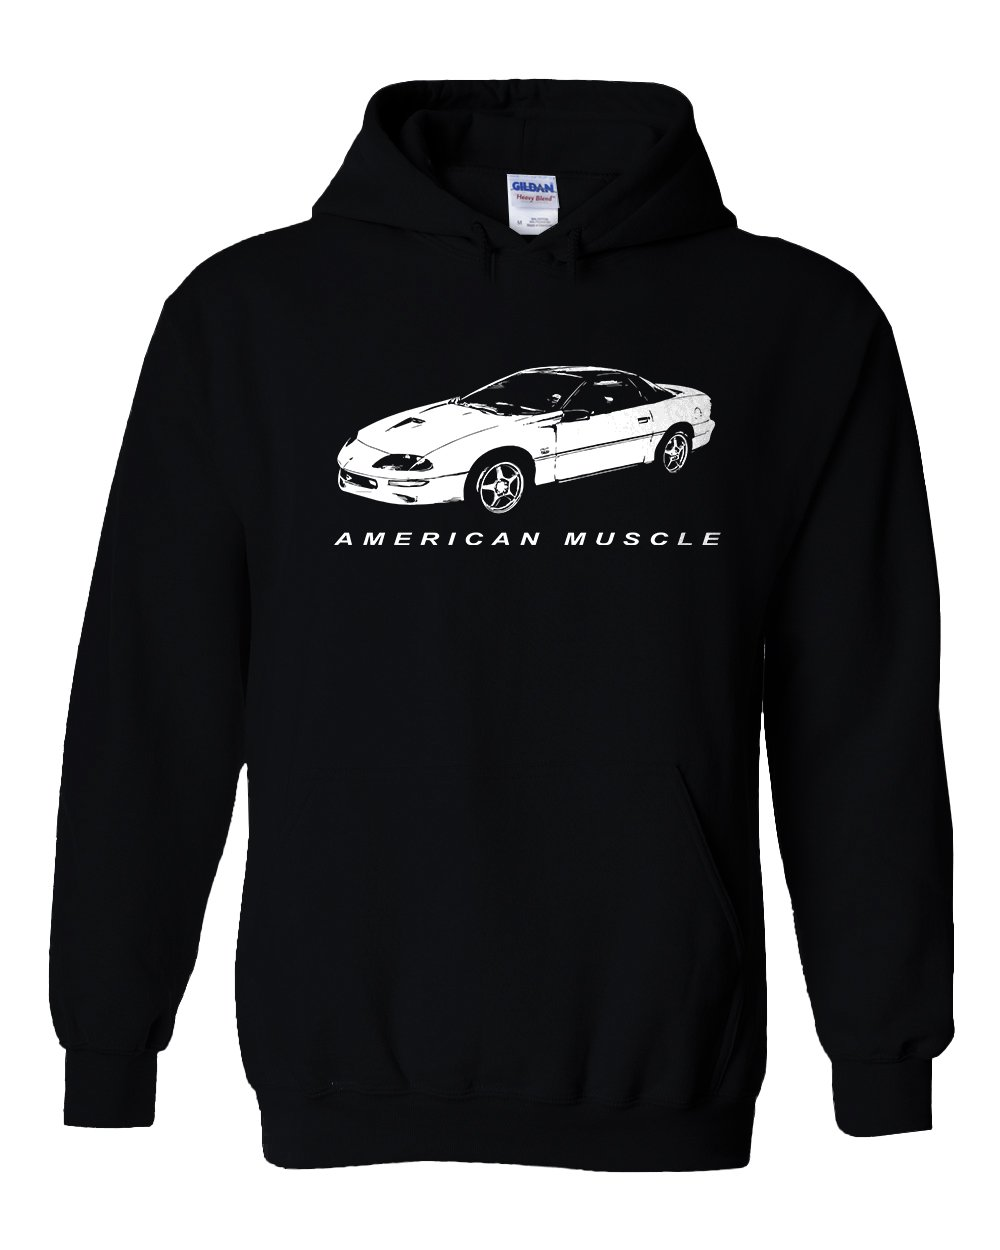 4th Gen Camaro SS Hoodie | Aggressive Thread Muscle Car Apparel